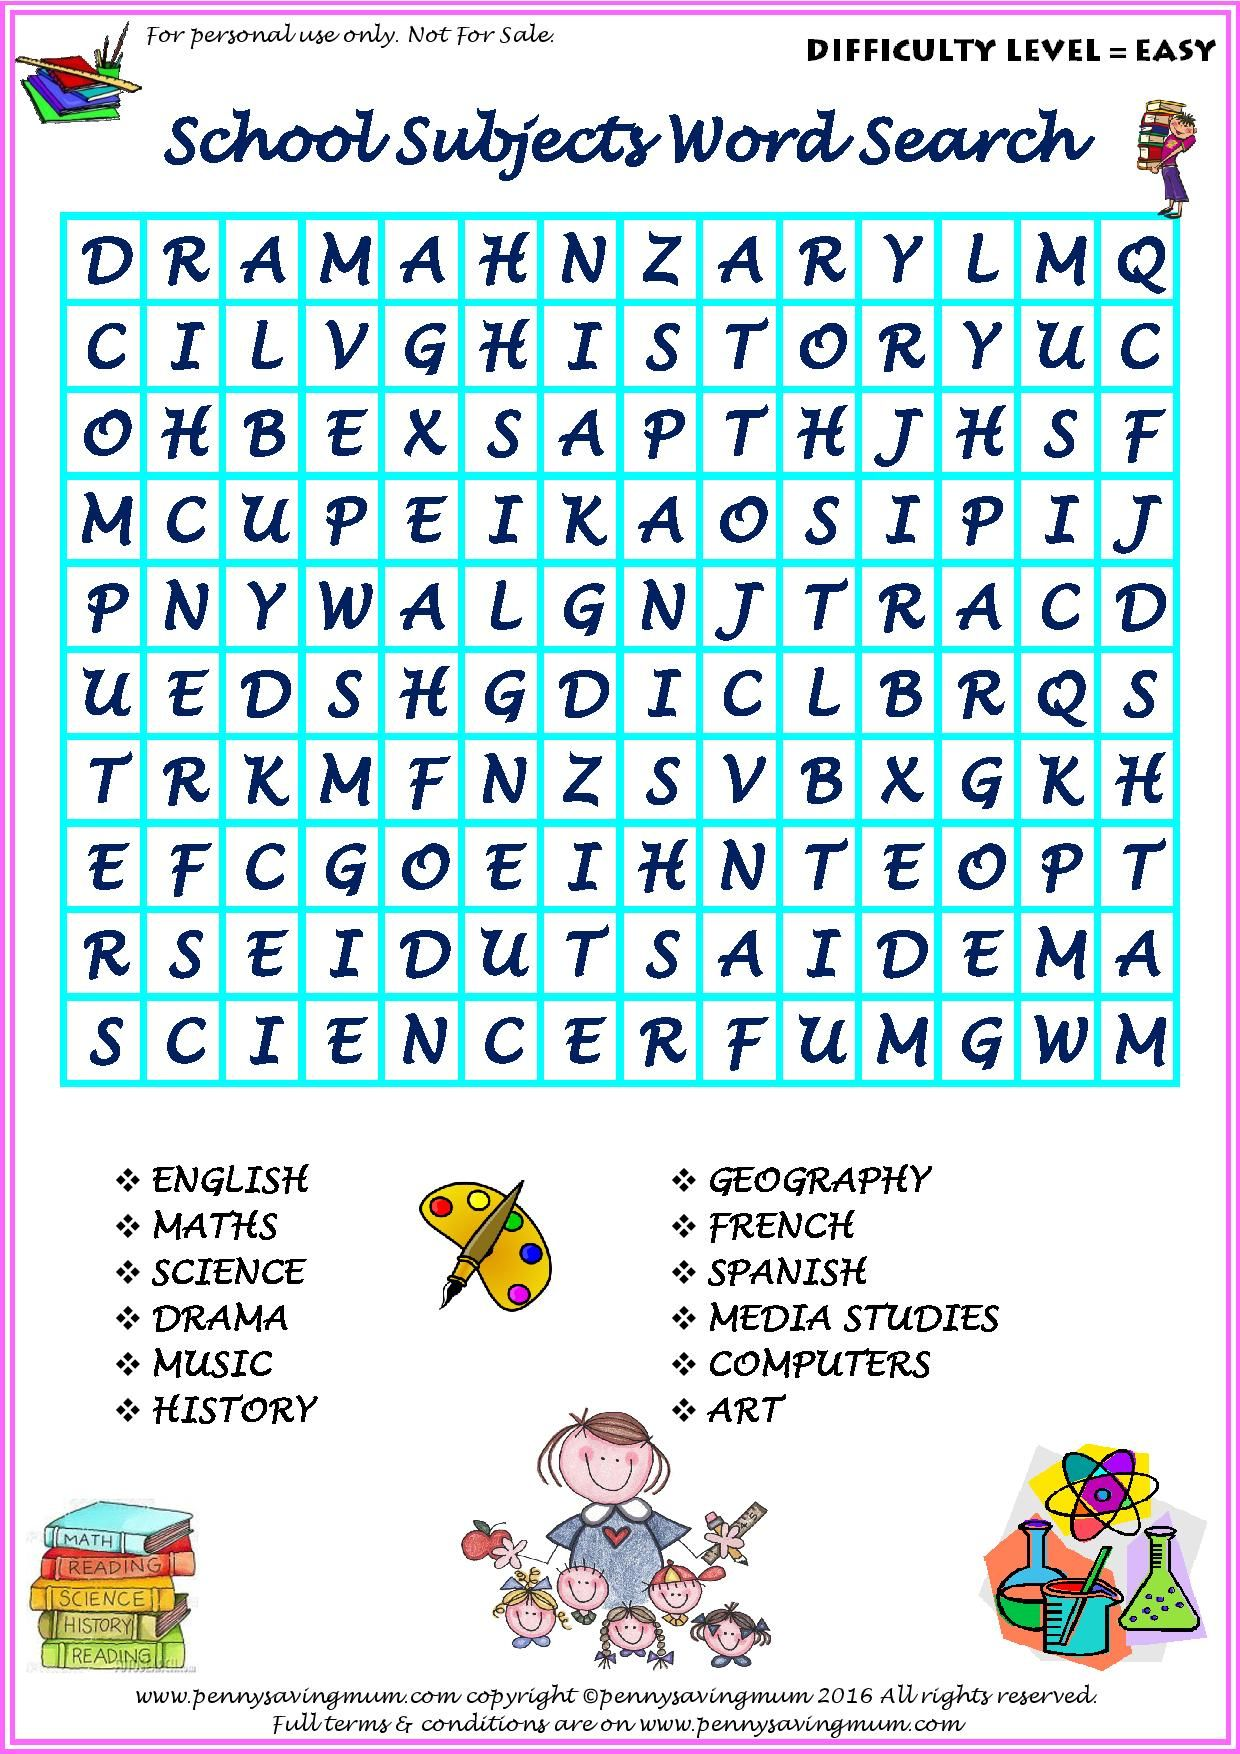 Word Search School Subjects Easy Version